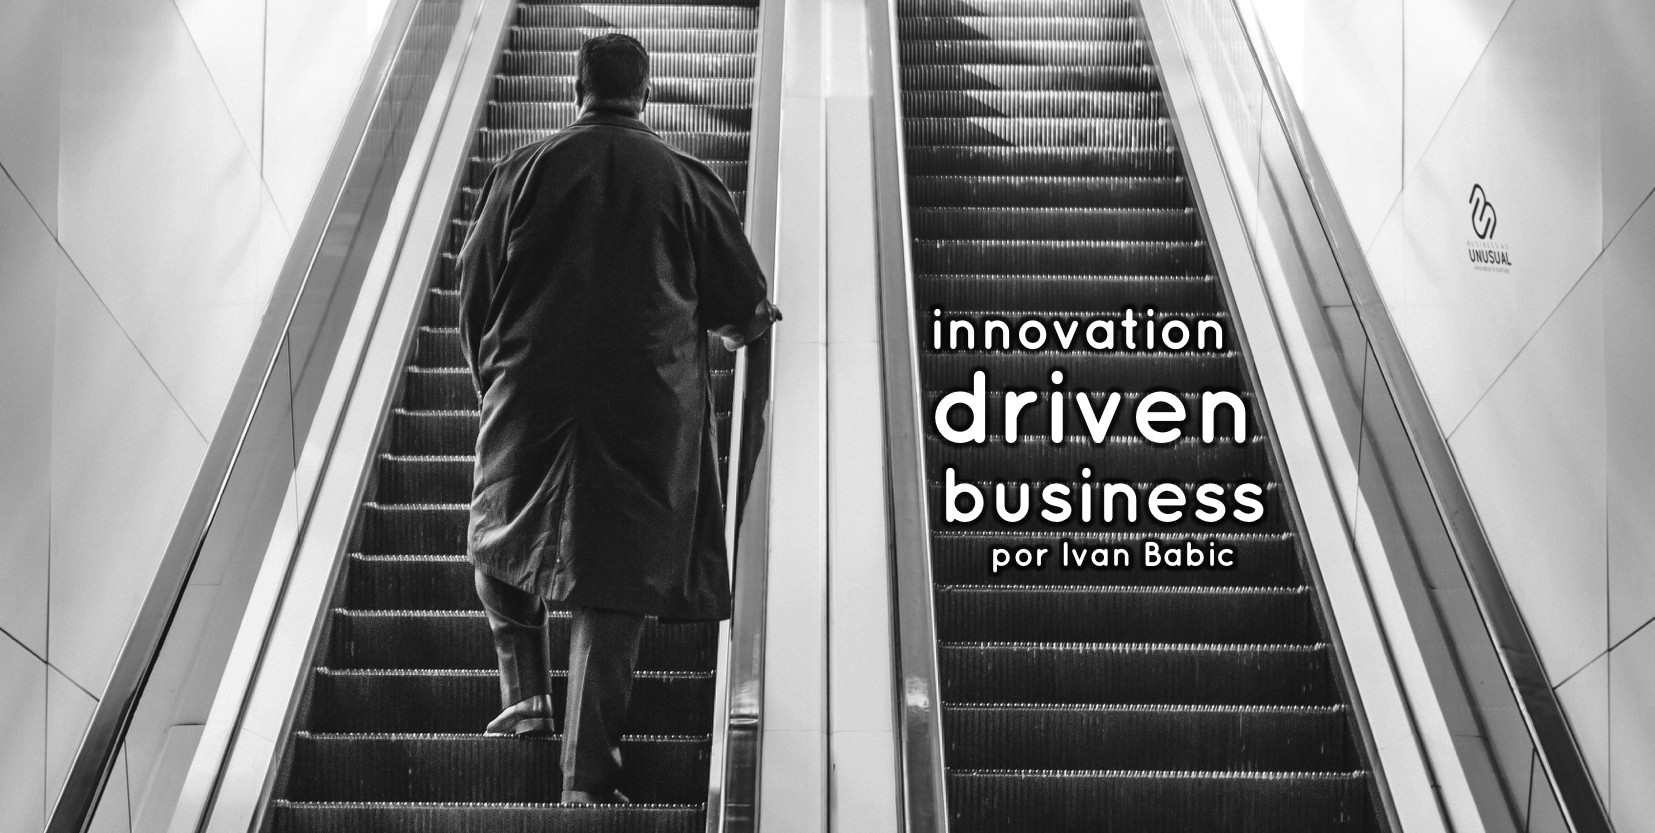 innovation driven business